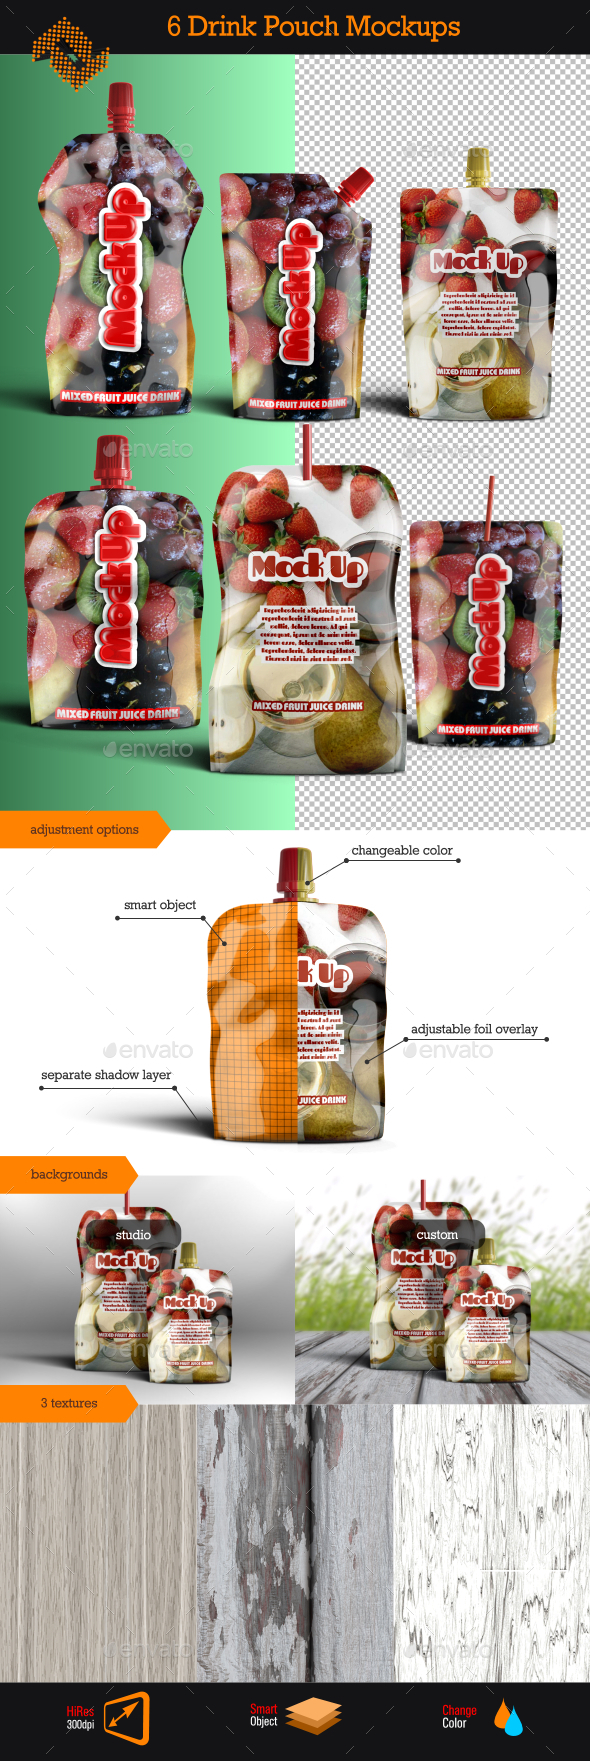 Aluminum Instant Drink Pouch Mockup - Food and Drink Packaging